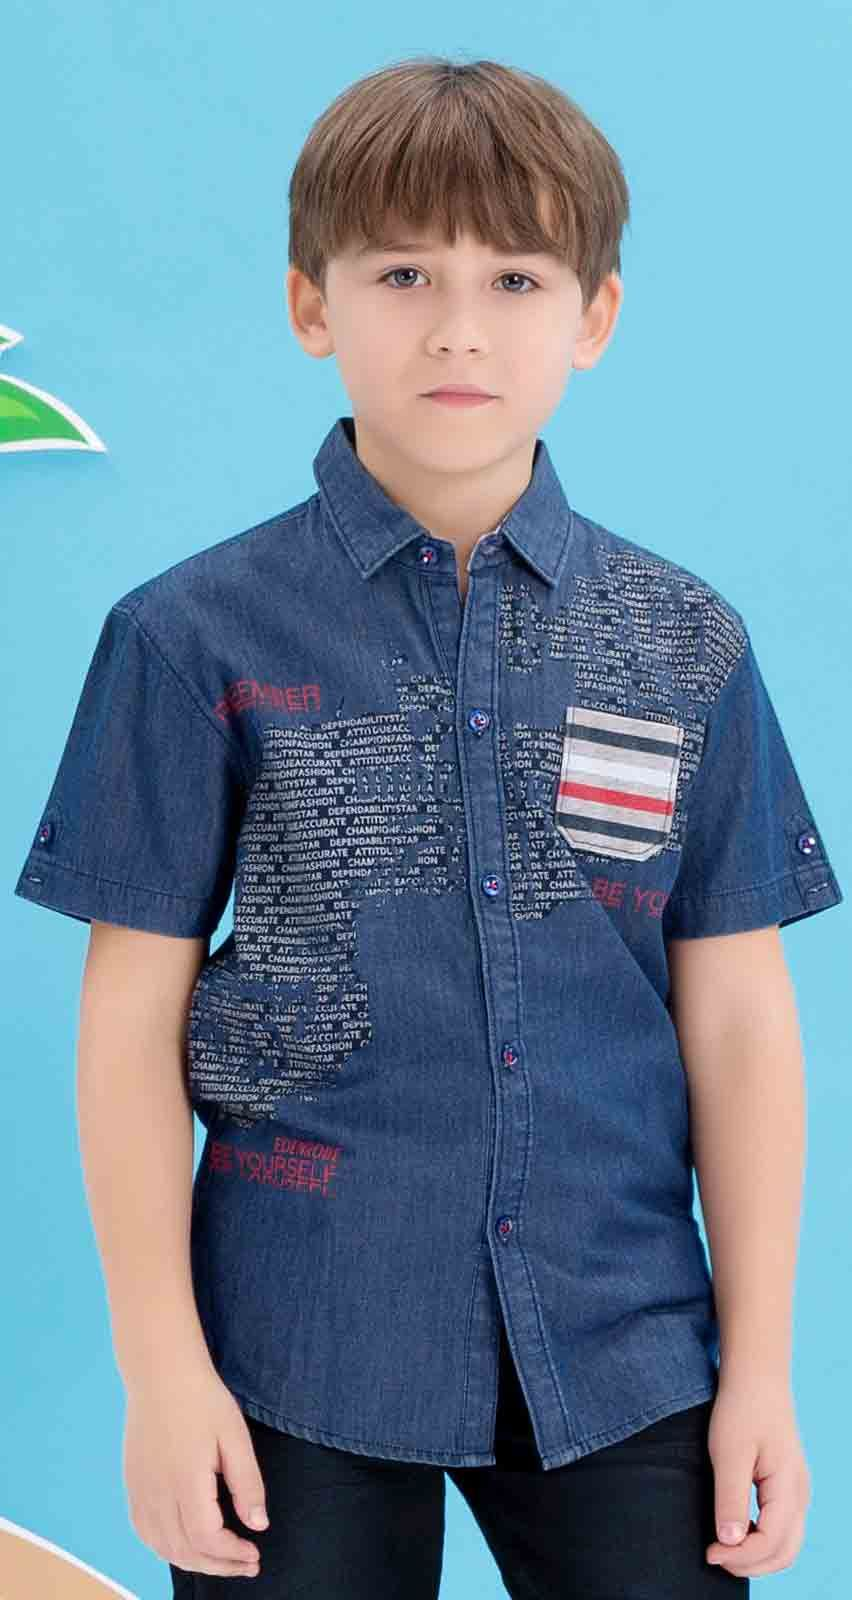 7cb1397a6dc Edenrobe blue shirt with jeans latest eid dresses for little boys in  Pakistan 2017